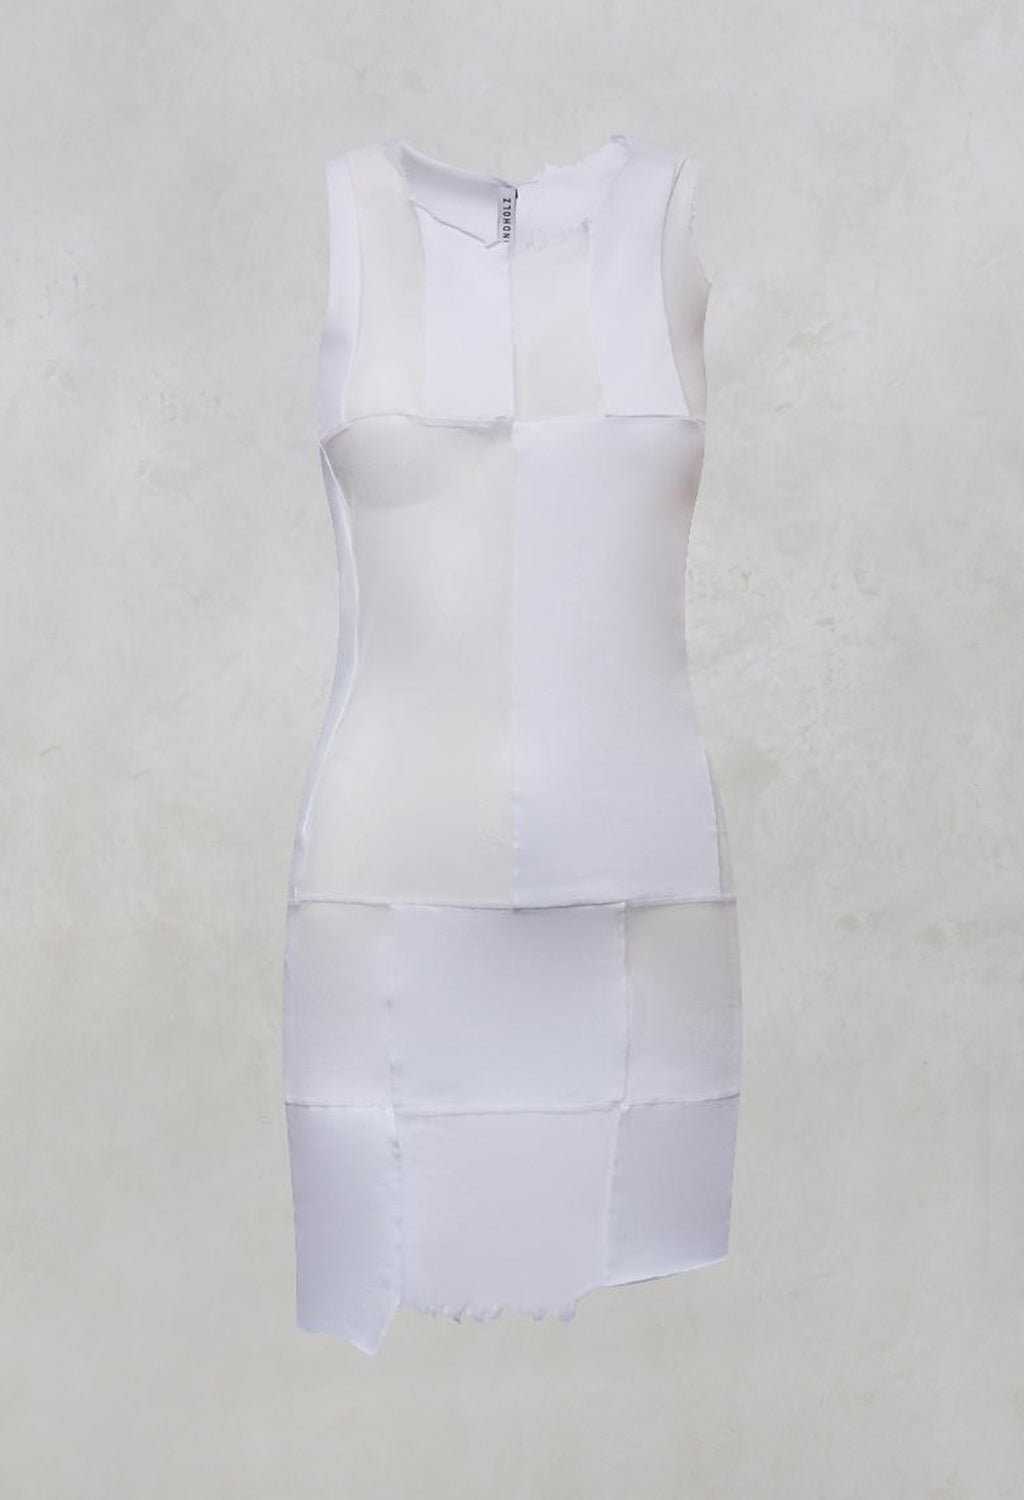 Sheer Sleeveless Tunic Vest with Patchwork Panels in White